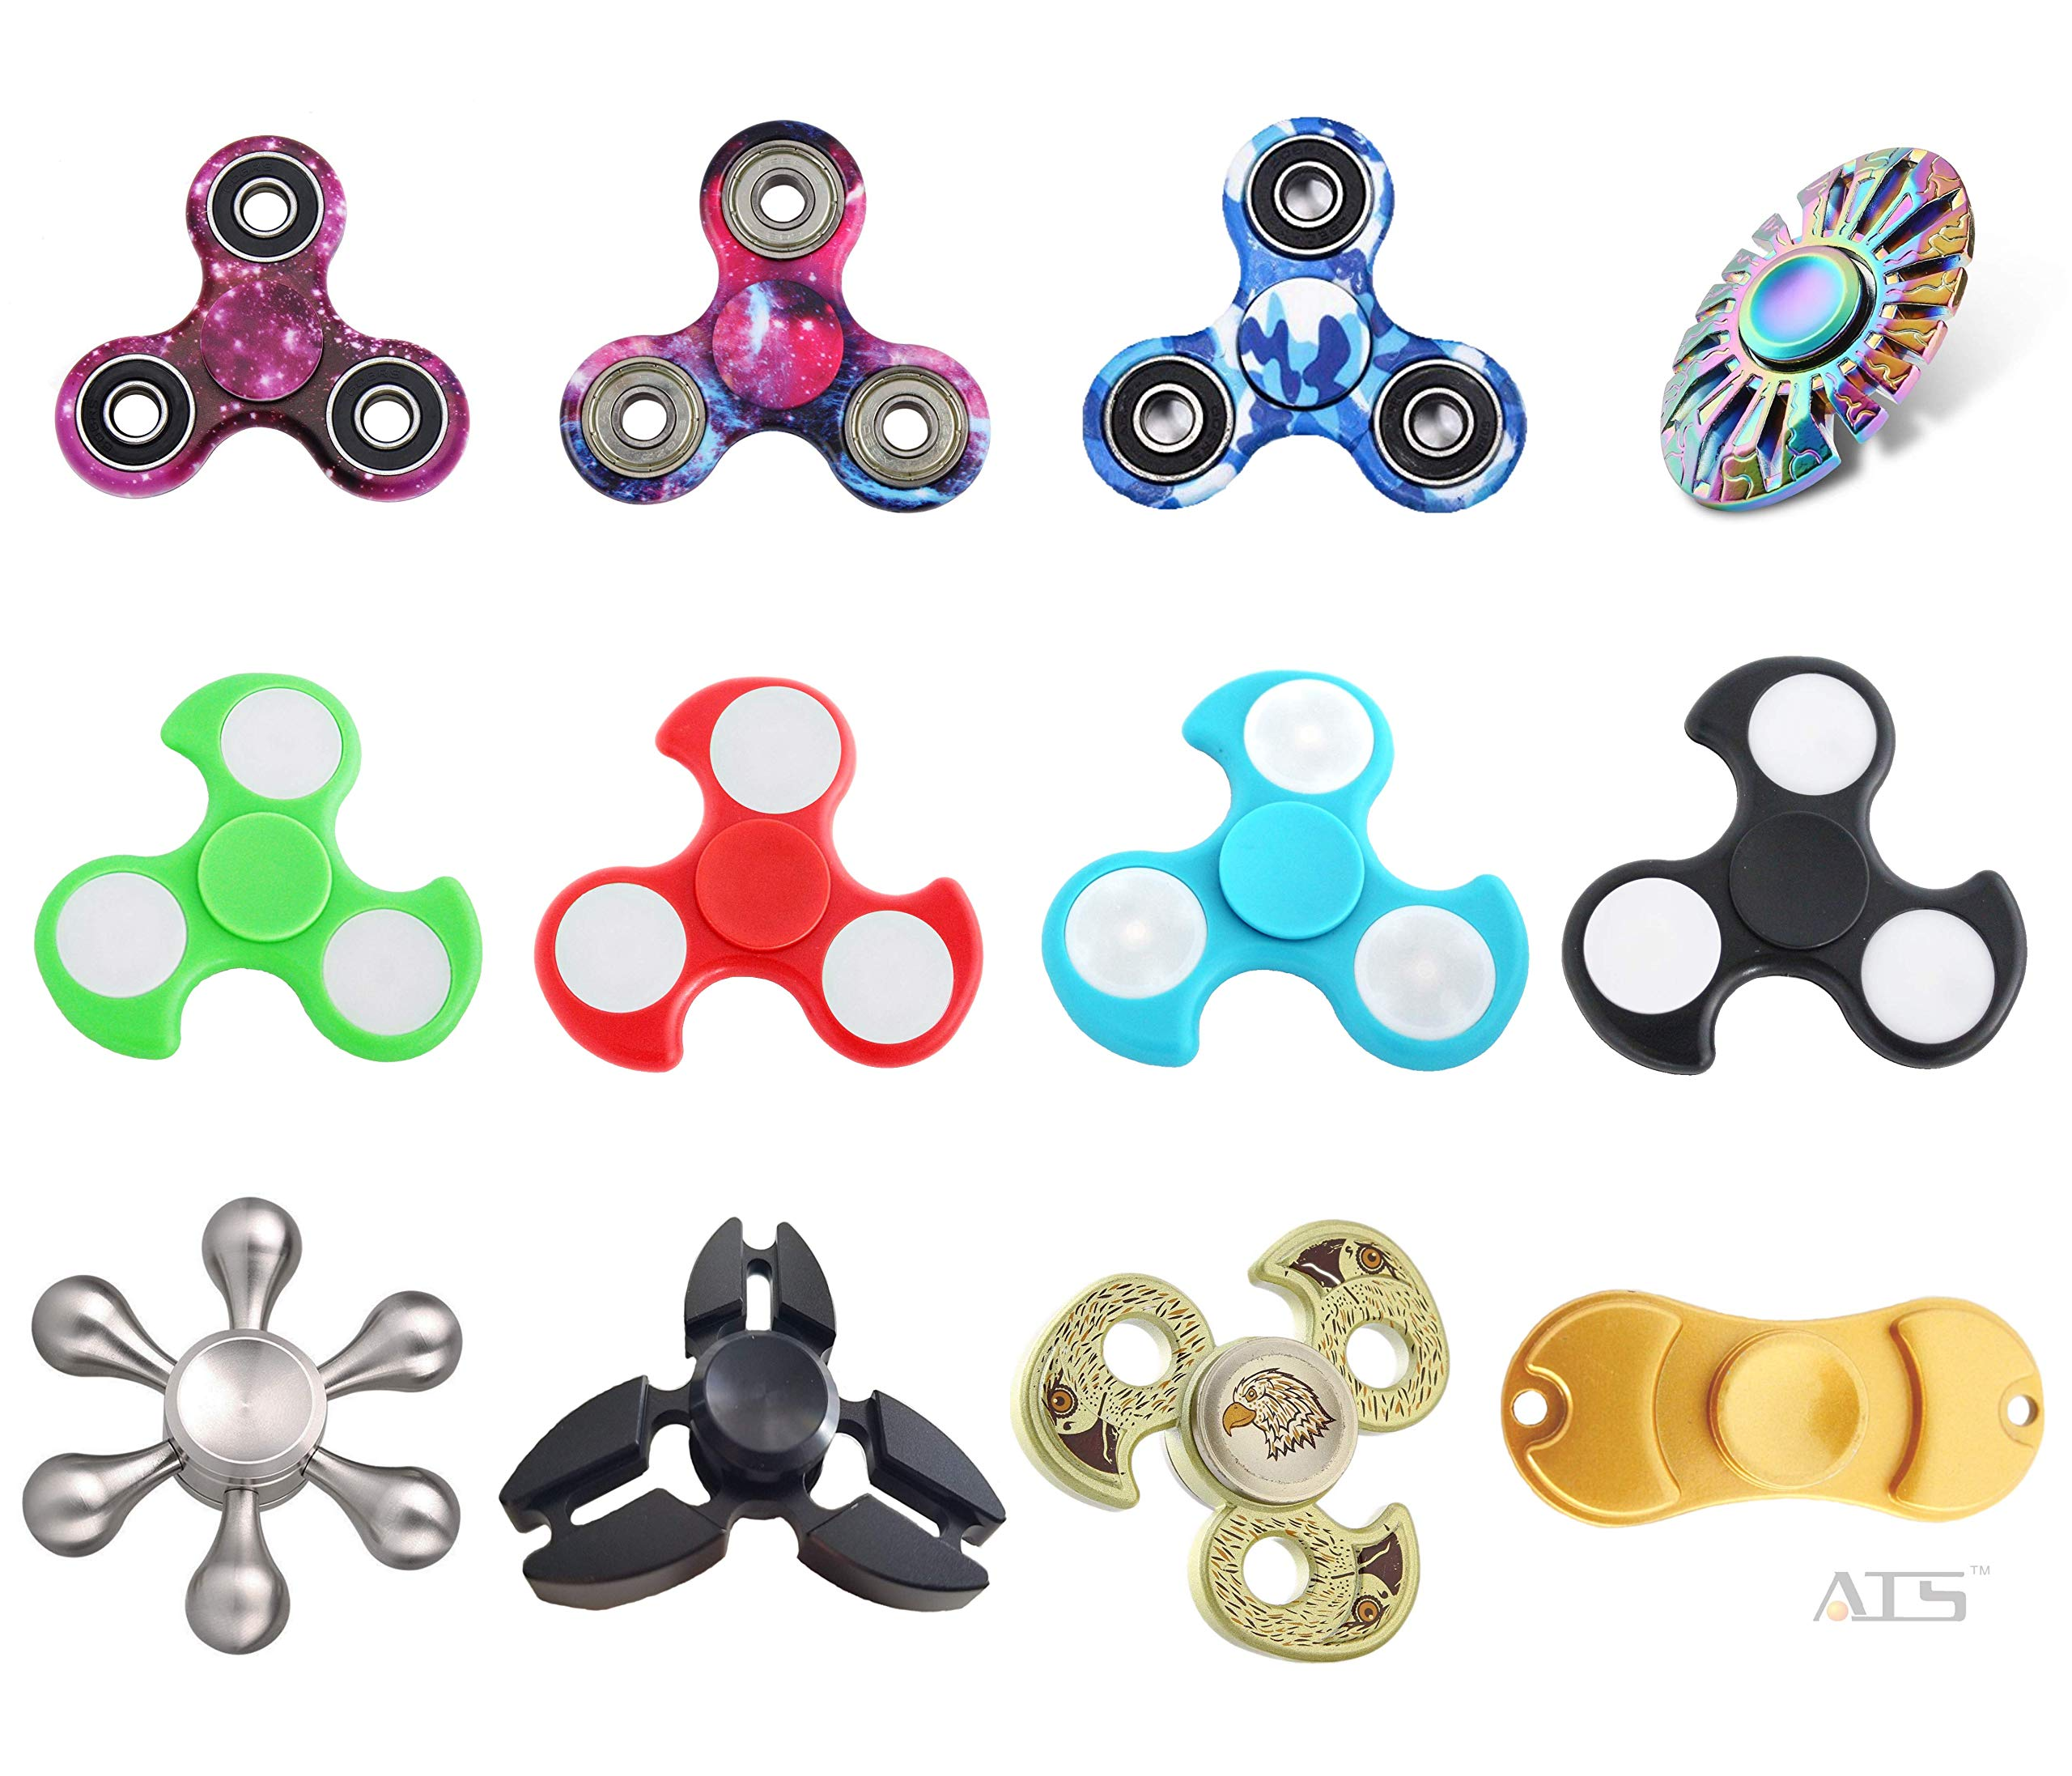 ATS 15-Pack Assorted Combo Fidget Spinners   Colors May Vary   15 pcs Mixed Hand Spinners Bundle   Perfect Finger Toys for Stress Relief, Anxiety, Autism, ADHD   Great Present for Adults Kids by ATS